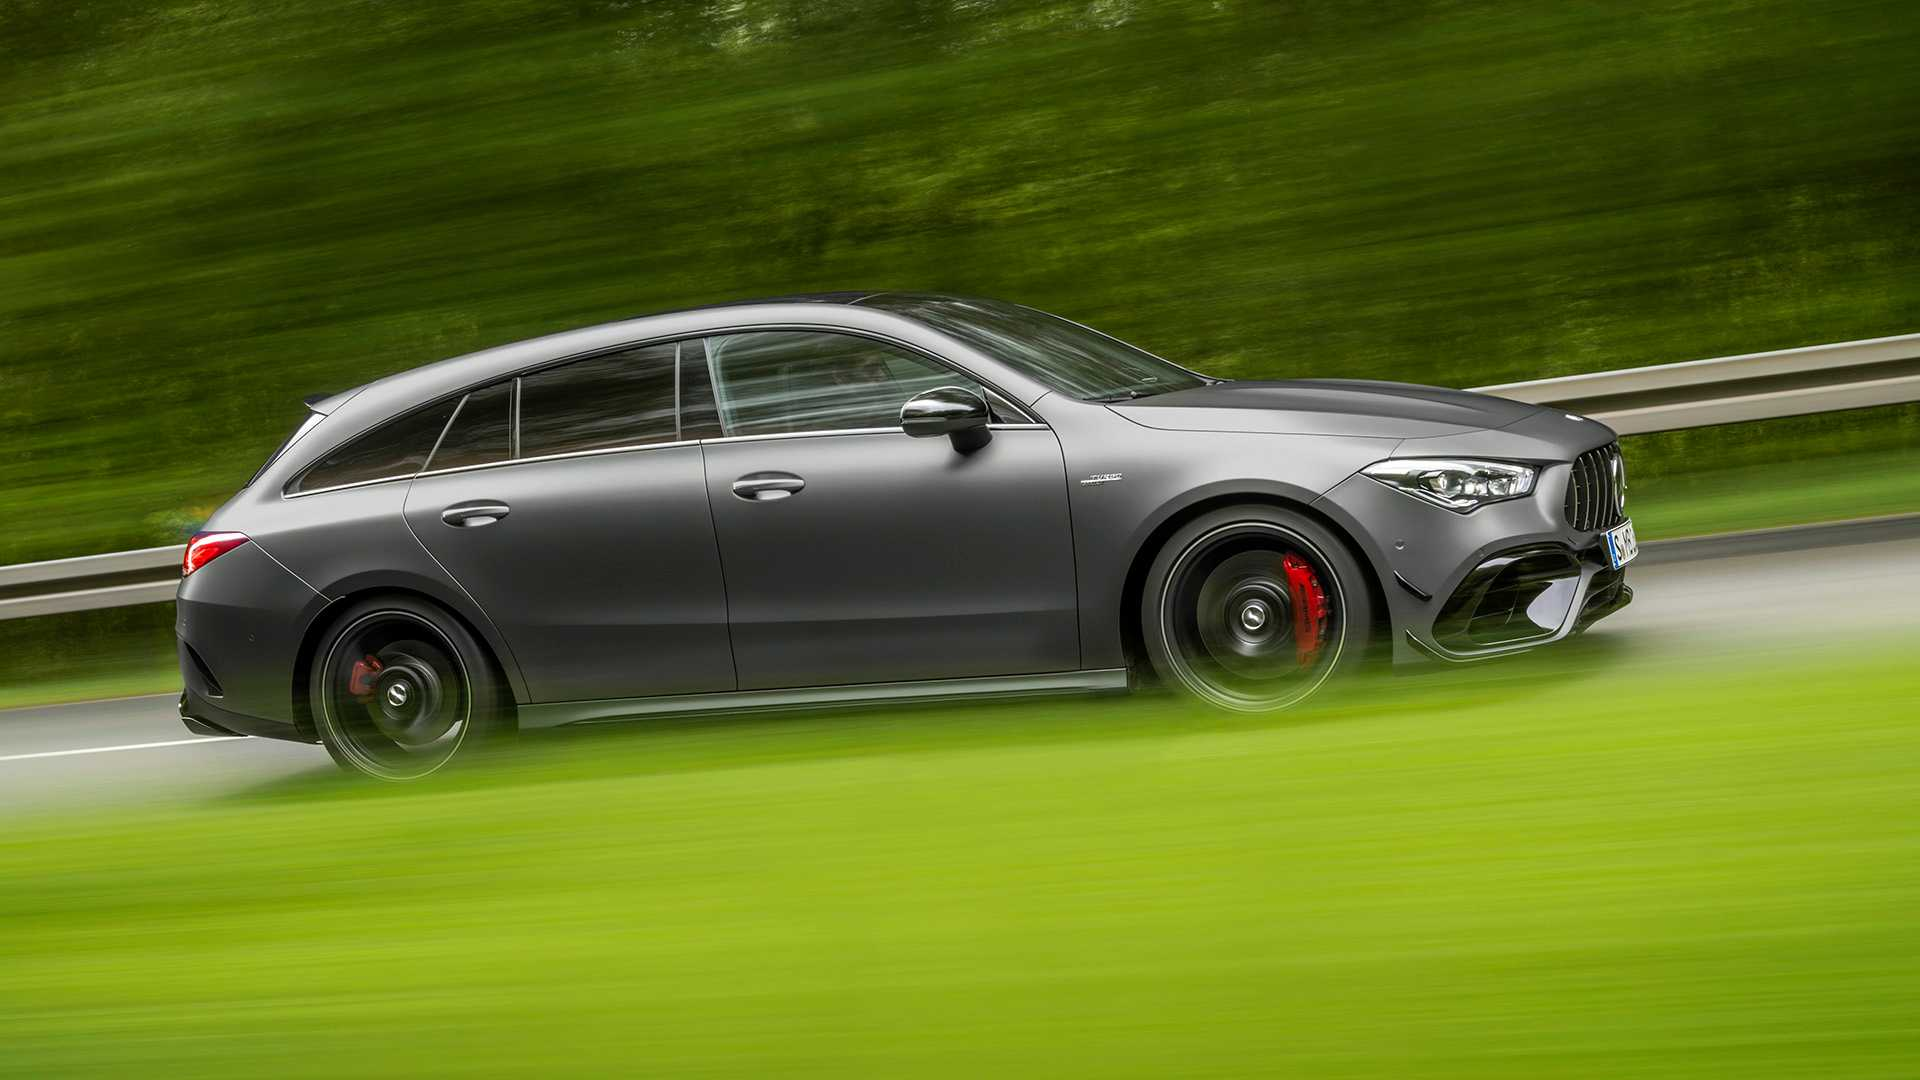 2020 Mercedes-AMG CLA 45 S 4MATIC+ Shooting Brake Side Wallpapers (8)